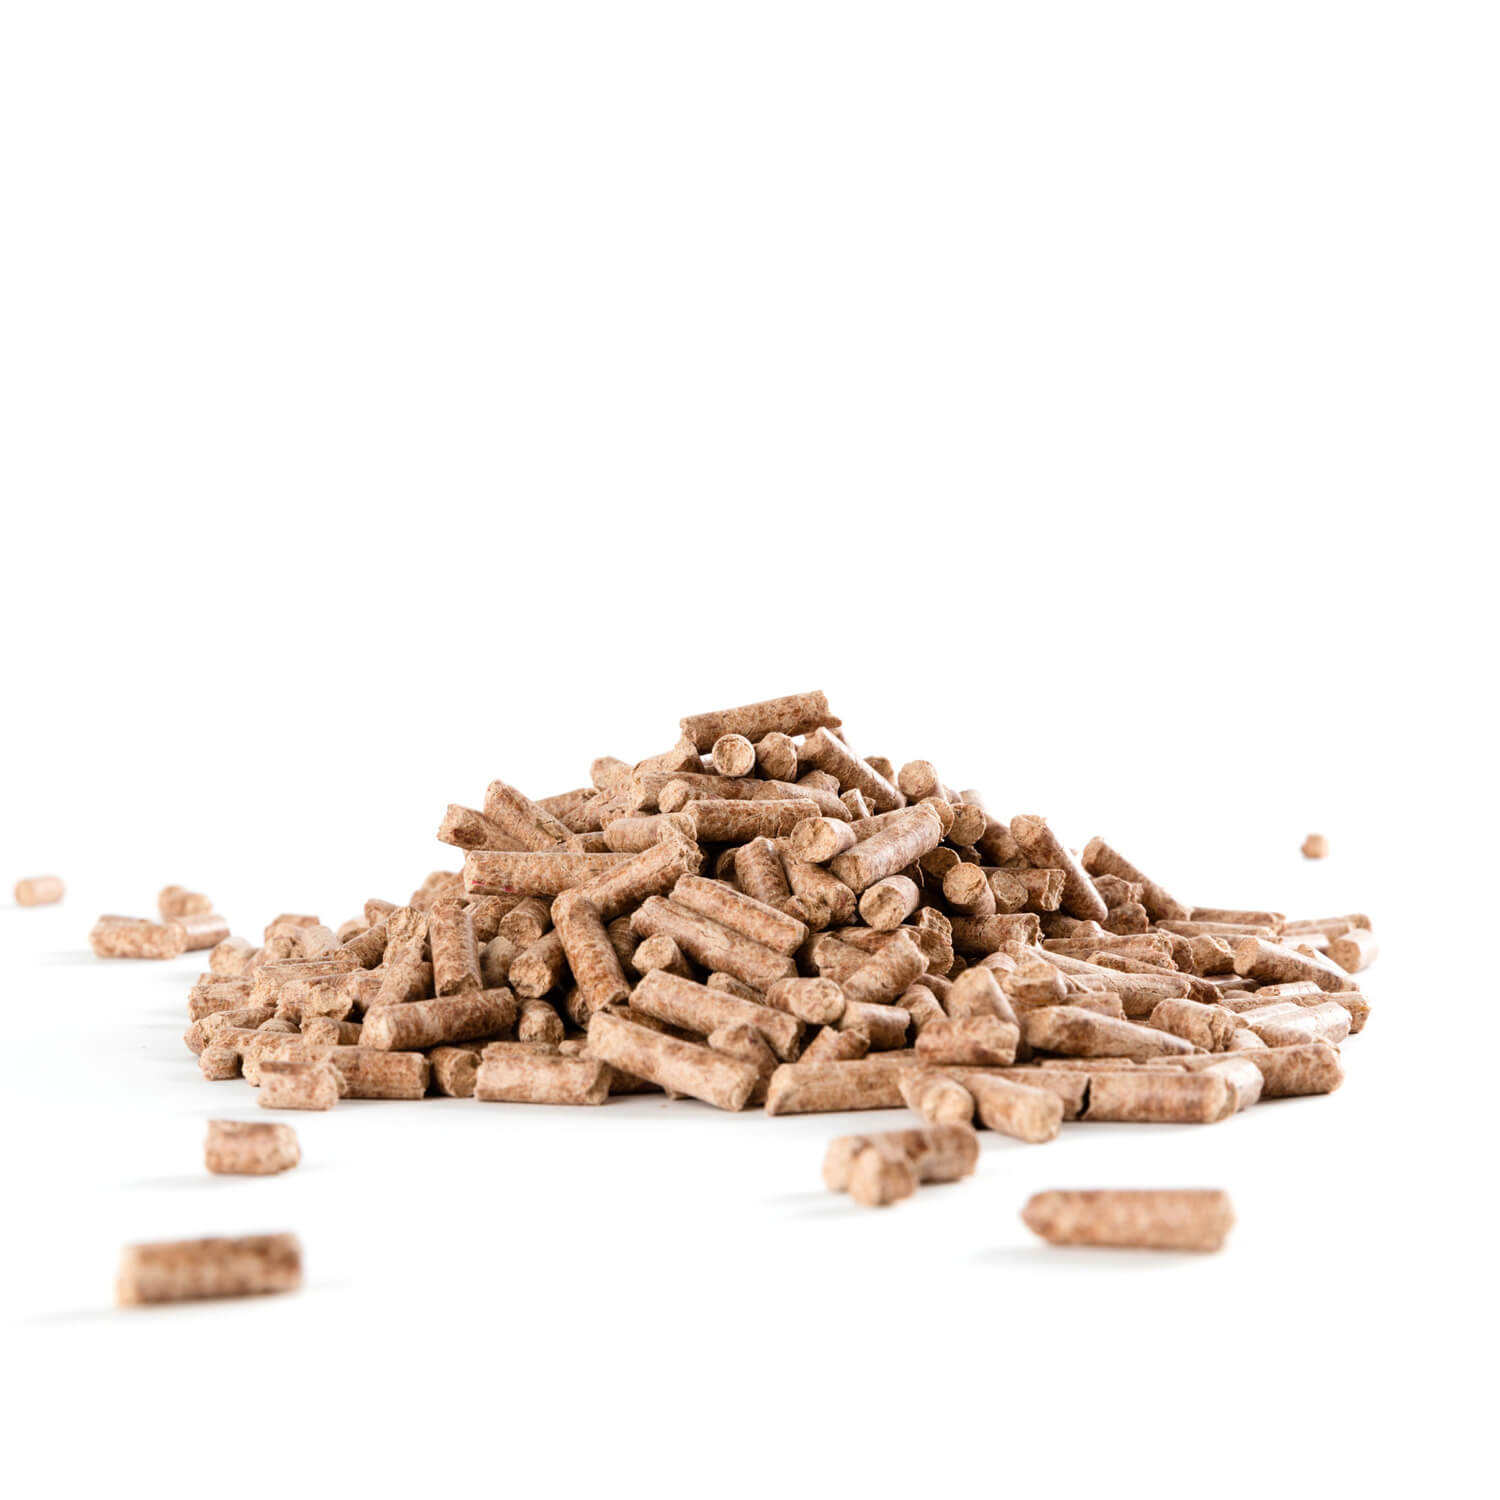 white pine and spruce wood pellets 960 tons available